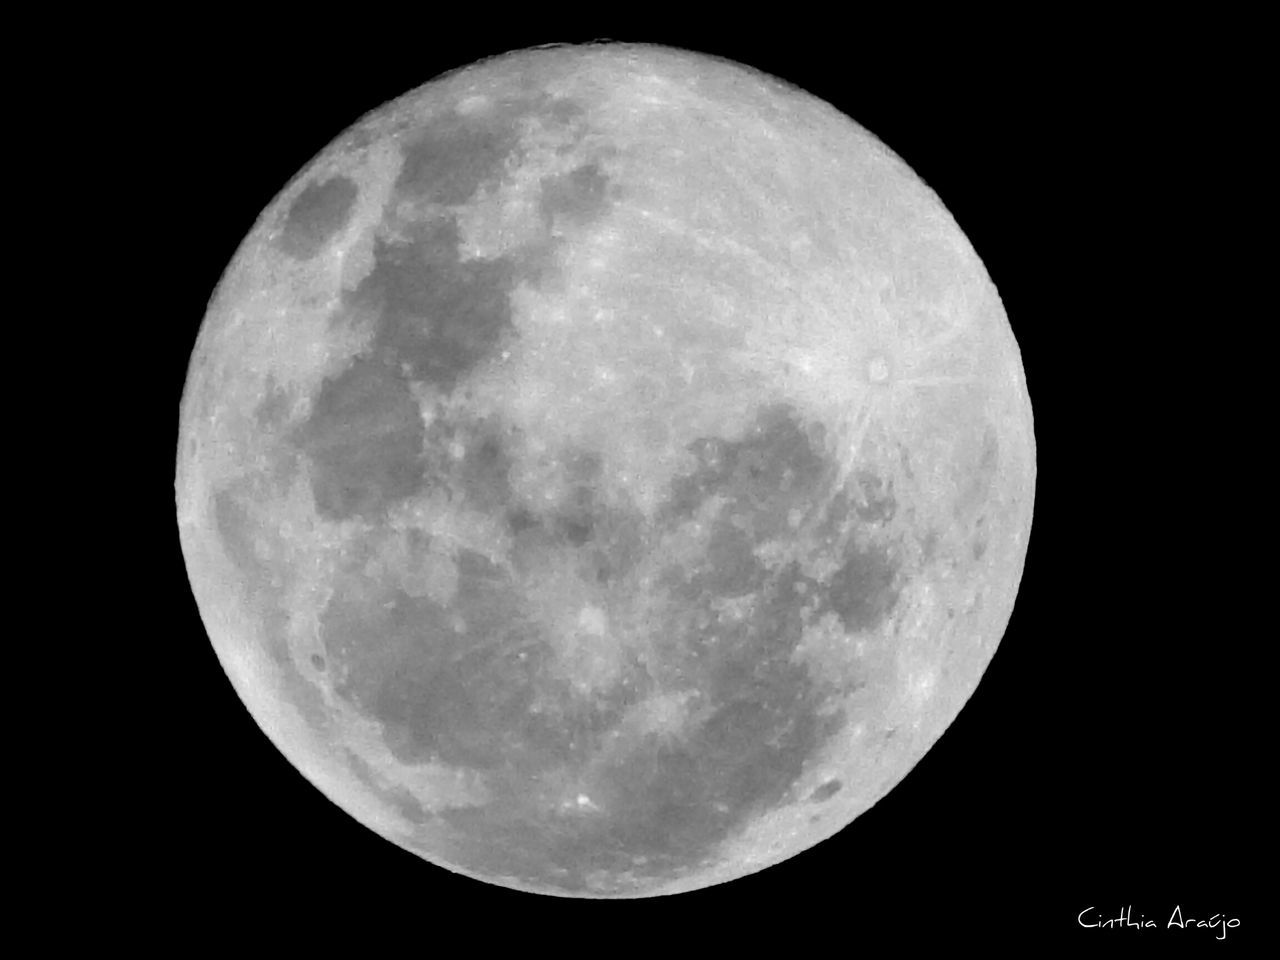 04 / 04 / 15 Às 19 : 55hrs AmorPelaFotografia Nikonphotography Nikonl820 People watching The Moon Lovethemoon